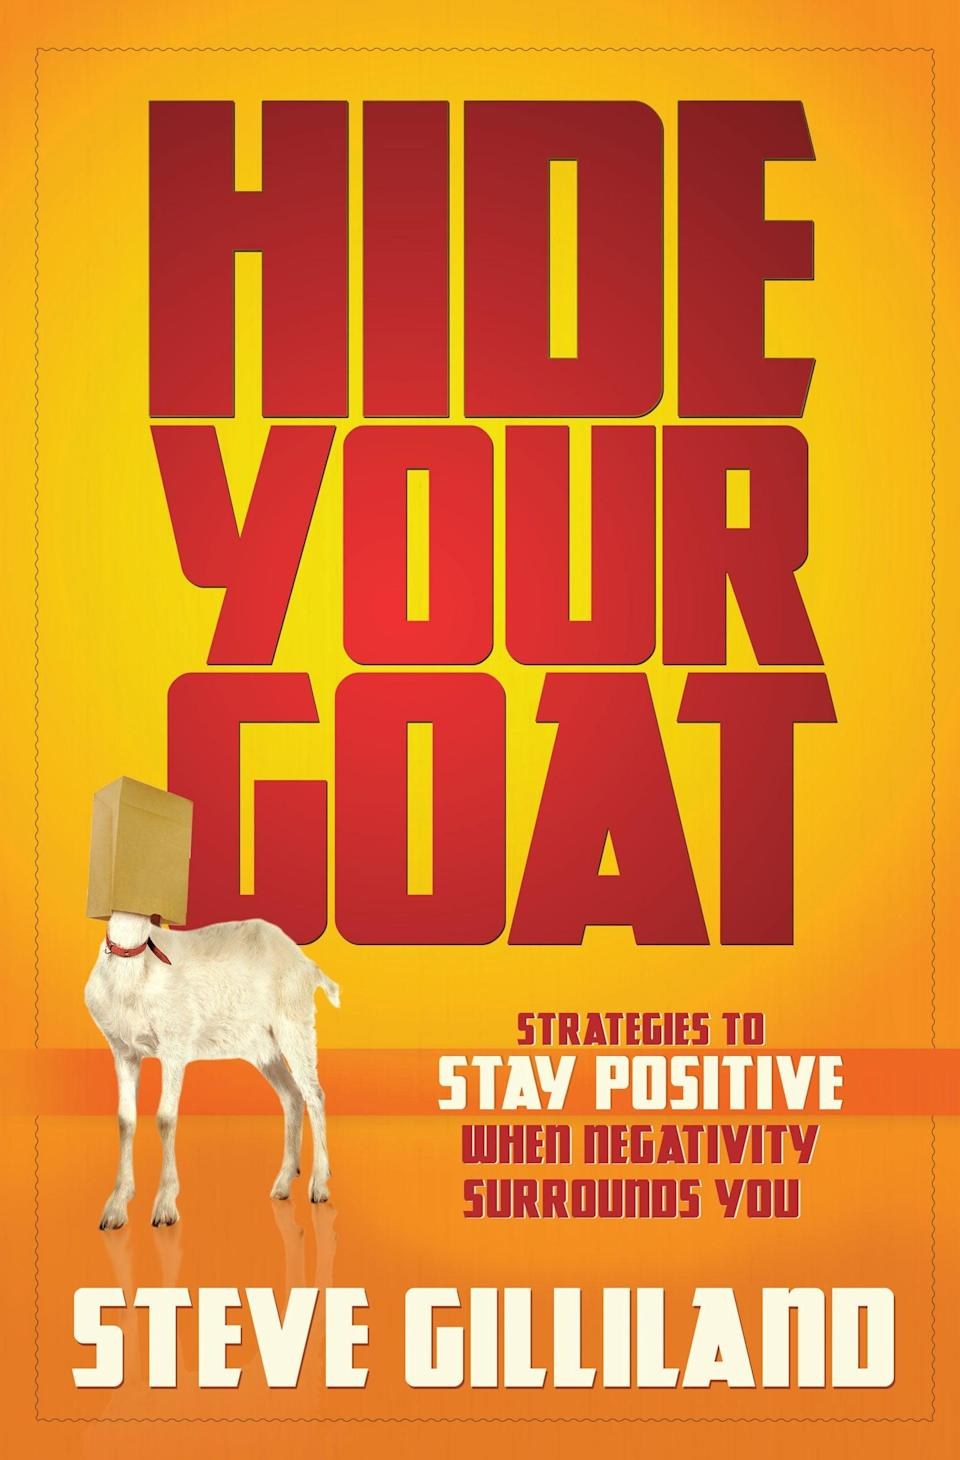 <p>Negativity is constantly engulfing us, but it's important to fight through the gloomy fog and recapture life's pleasures. In <span>Hide Your Goat</span>, Steve Gilliland provides six core principles to help you stay positive when you encounter obstacles and disappointments. </p>